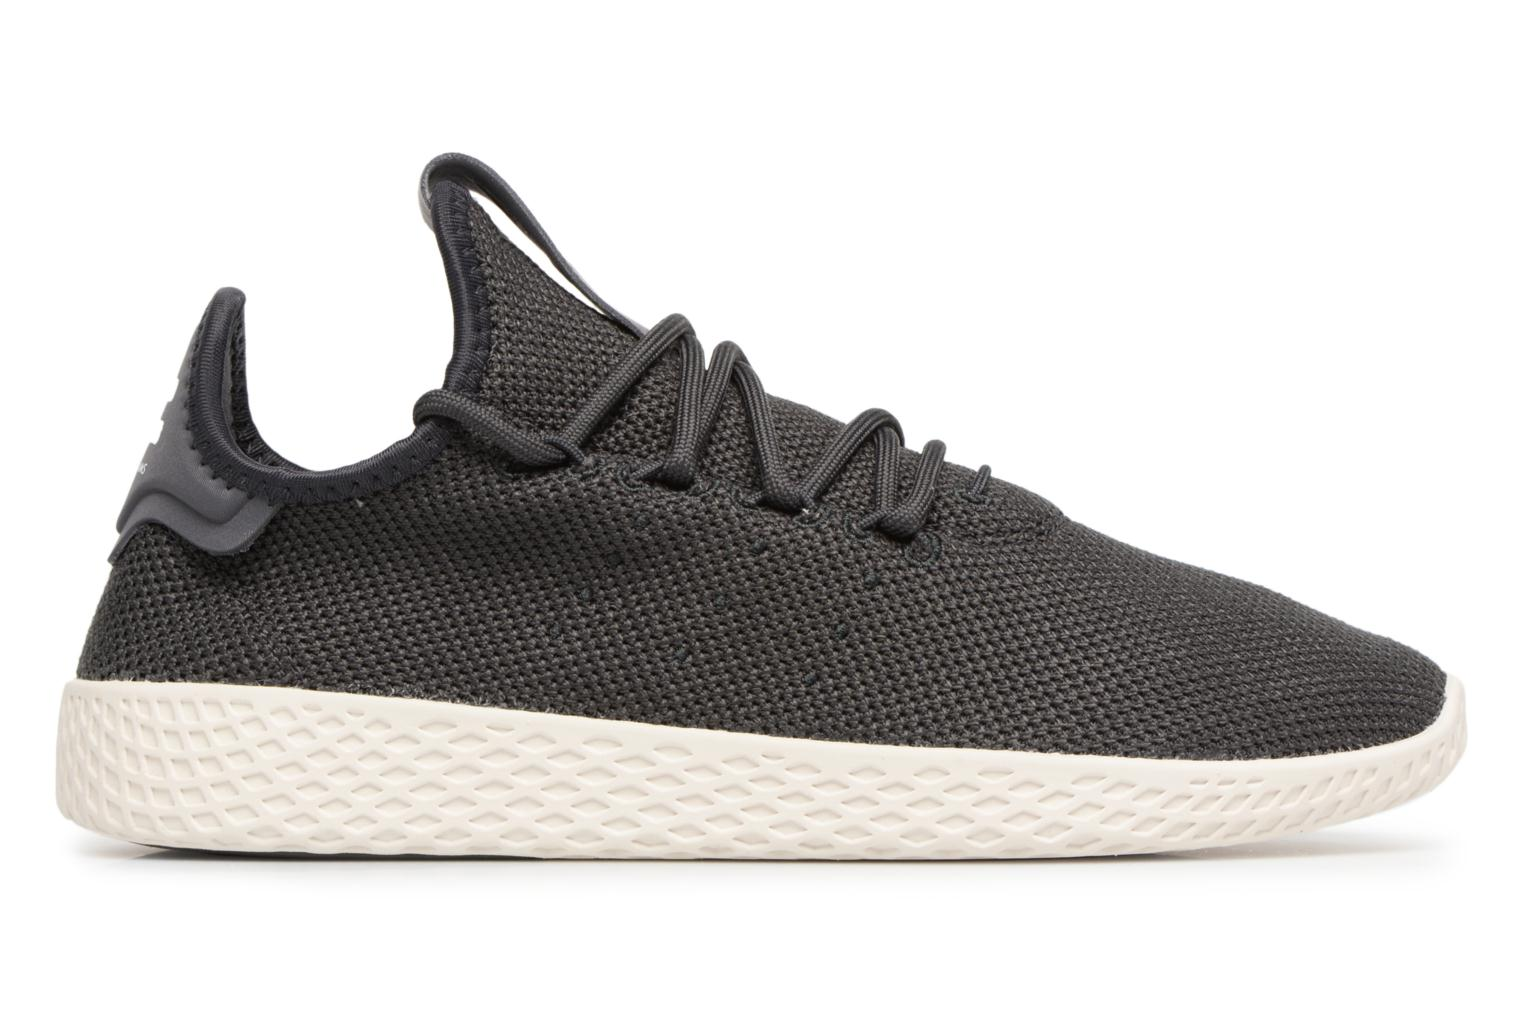 Baskets Adidas Originals Pharrell Williams Tennis Hu J Gris vue derrière